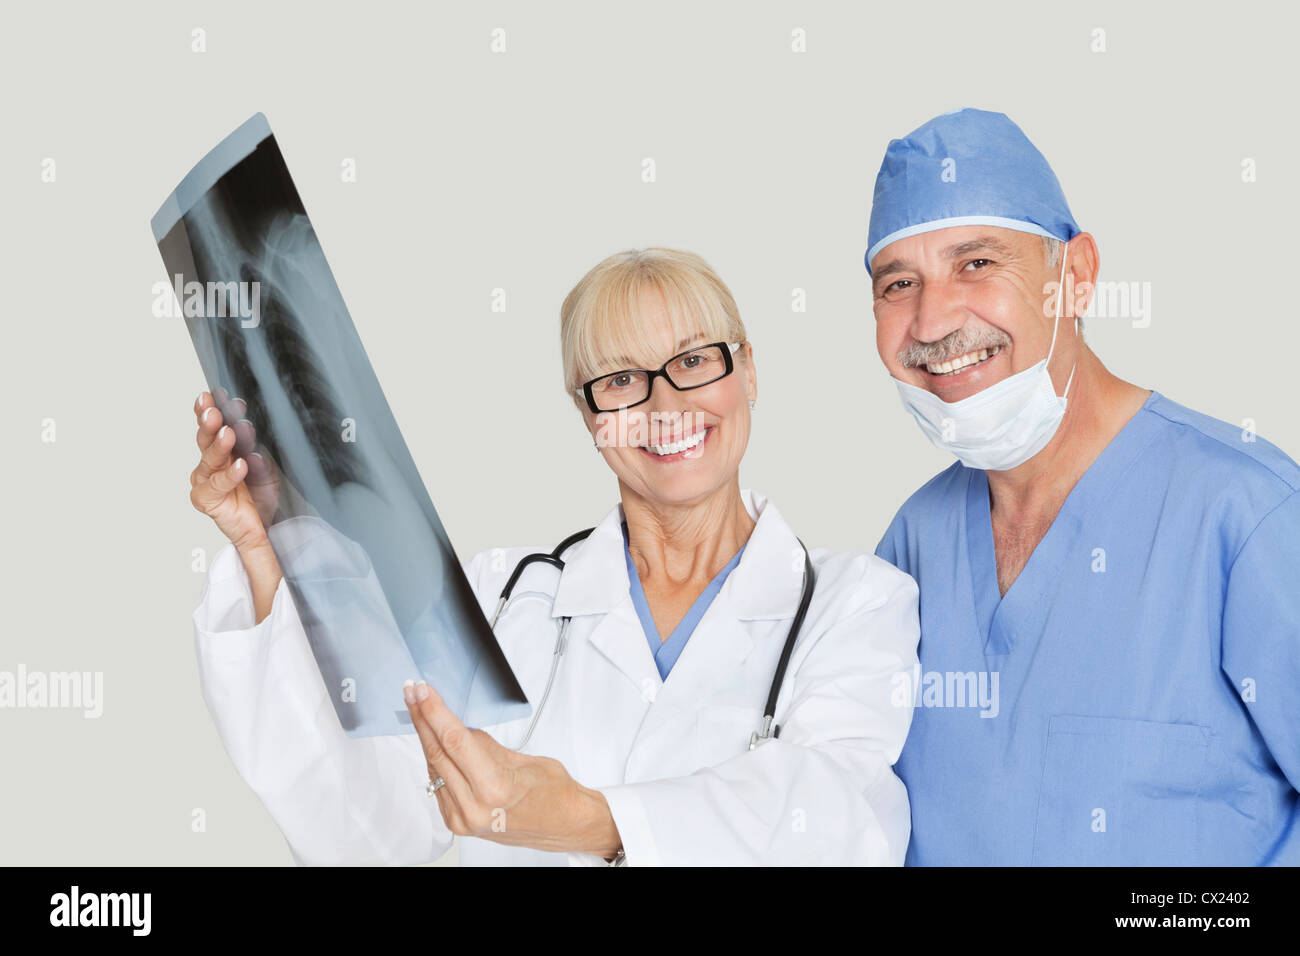 Portrait of happy medical colleagues with radiograph over gray background - Stock Image